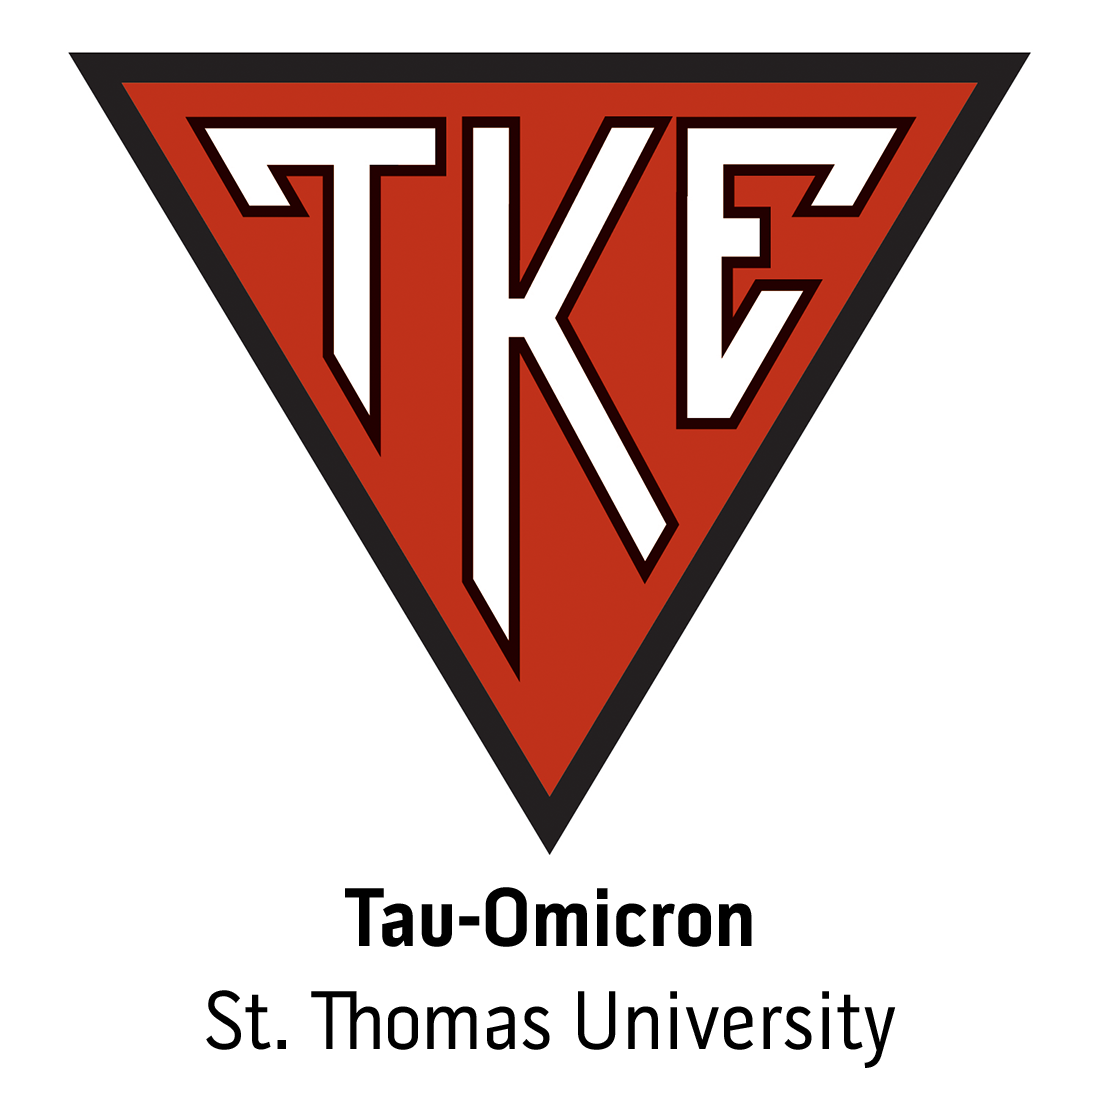 Tau-Omicron Chapter at St. Thomas University